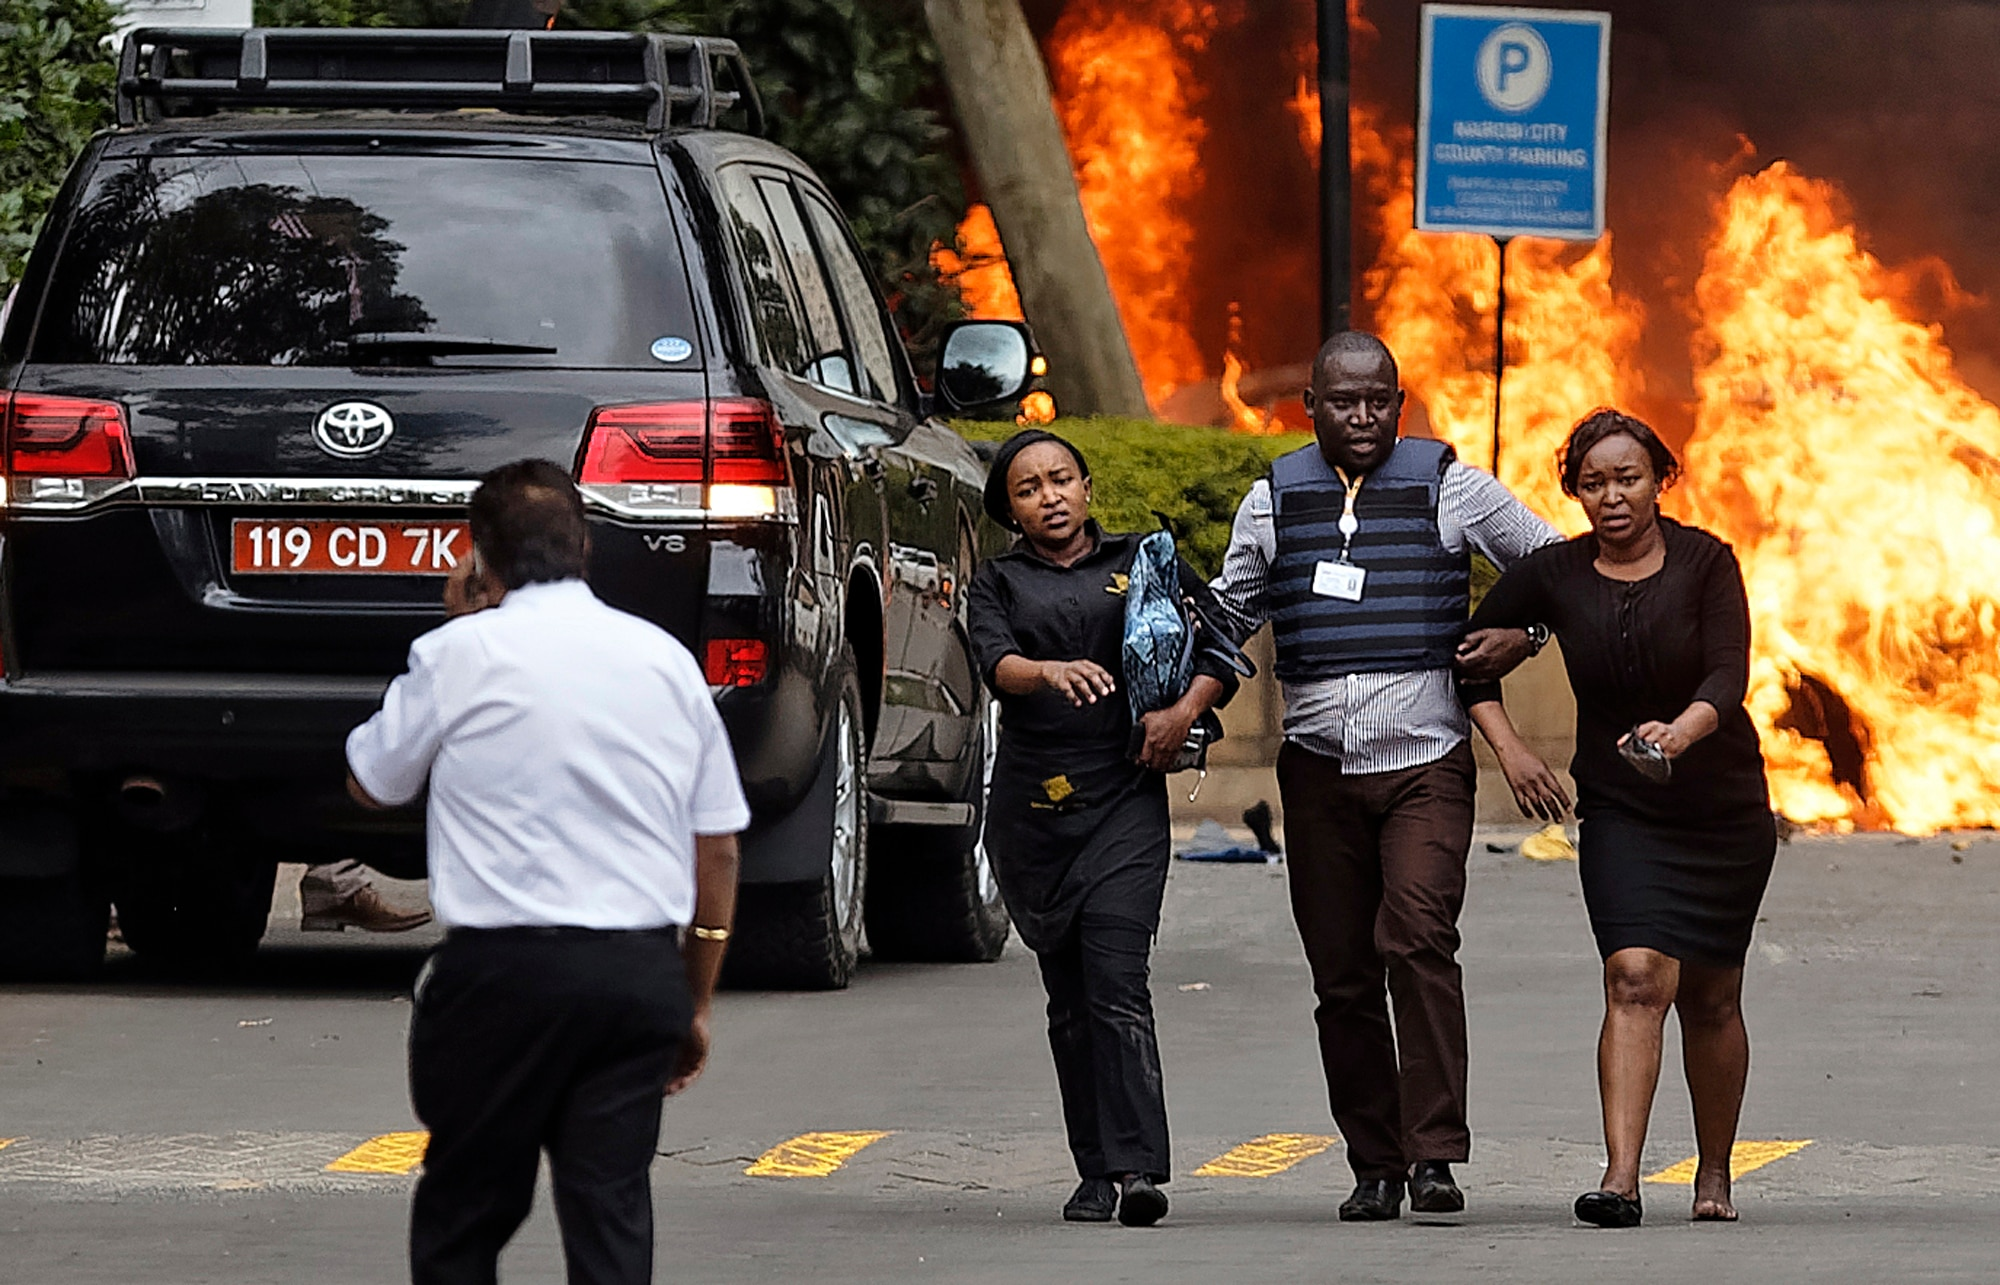 Security forces help civilians flee the scene as cars burn behind, at a hotel complex in Nairobi, Kenya Tuesday, Jan. 15, 2019. Terrorists attacked an upscale hotel complex in Kenya's capital Tuesday, sending people fleeing in panic as explosions and heavy gunfire reverberated through the neighborhood. (AP Photo/Ben Curtis) A private security officer helps civilians flee gunmen and burning cars during a terrorist attack at the DusitD2 Hotel complex in Nairobi, January 15, 2019. (AP/WideWorld Photos)